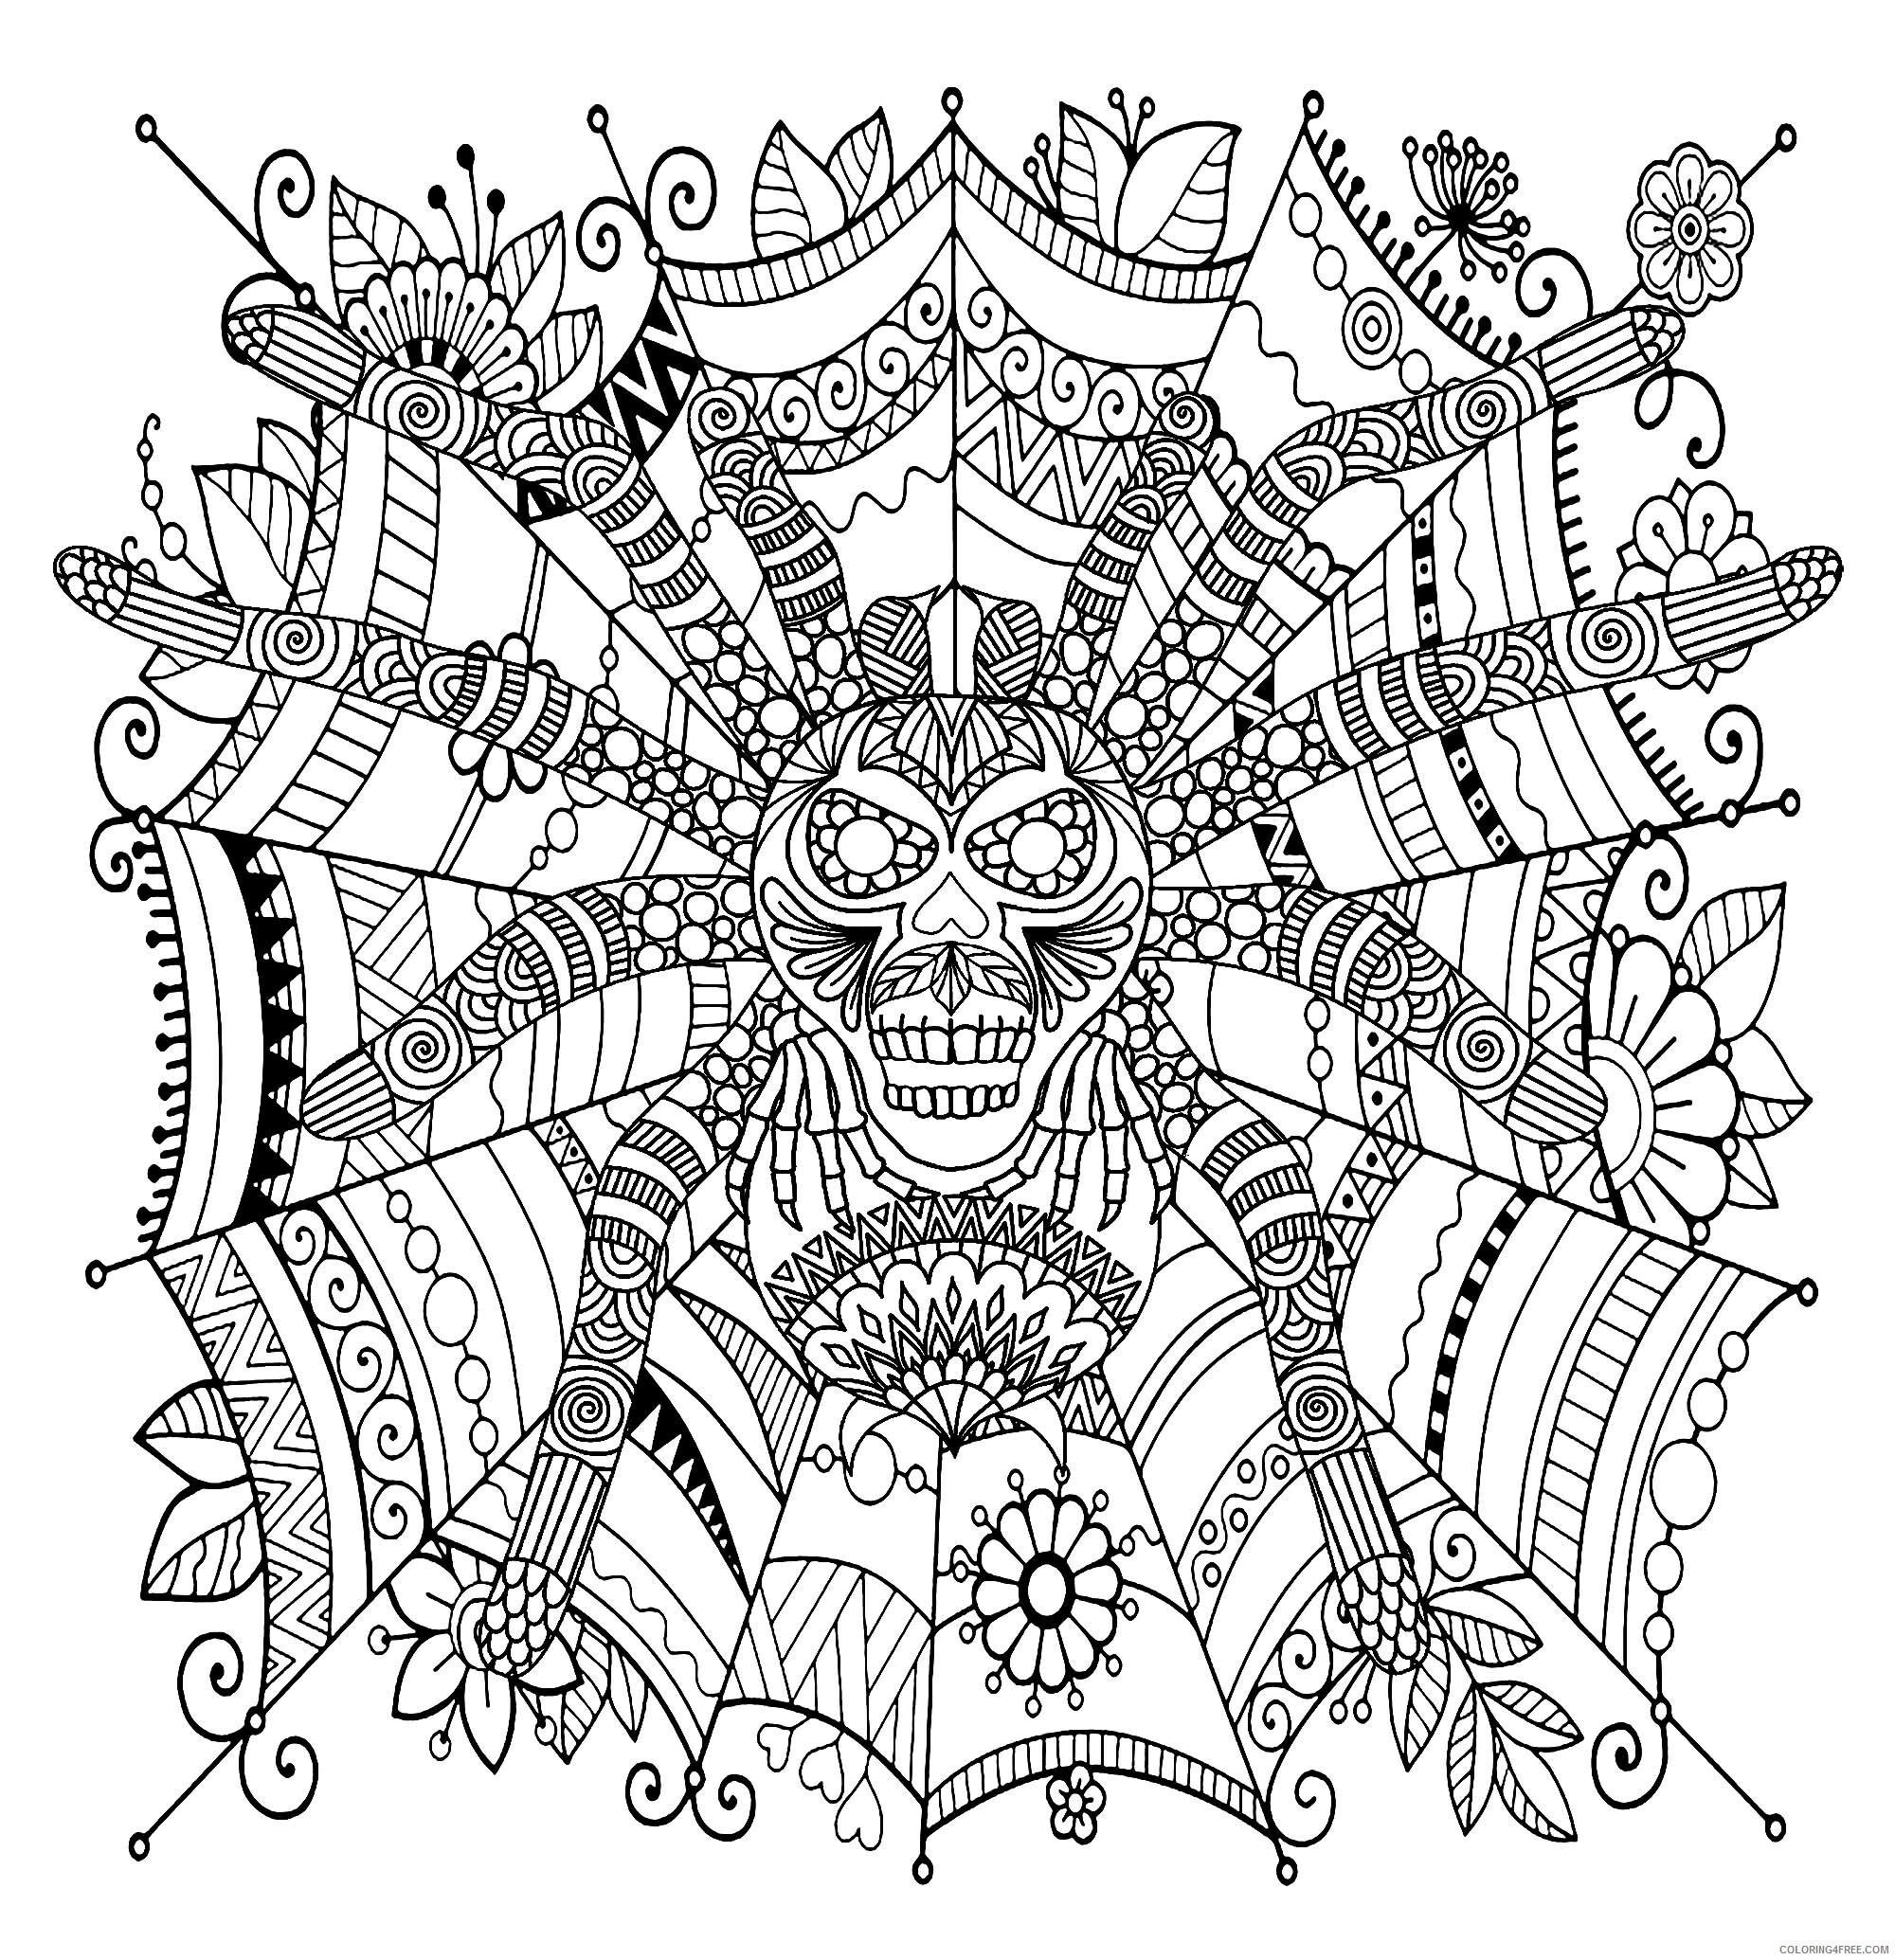 Adult Coloring Pages Spider for Adults Printable 2020 074 Coloring4free